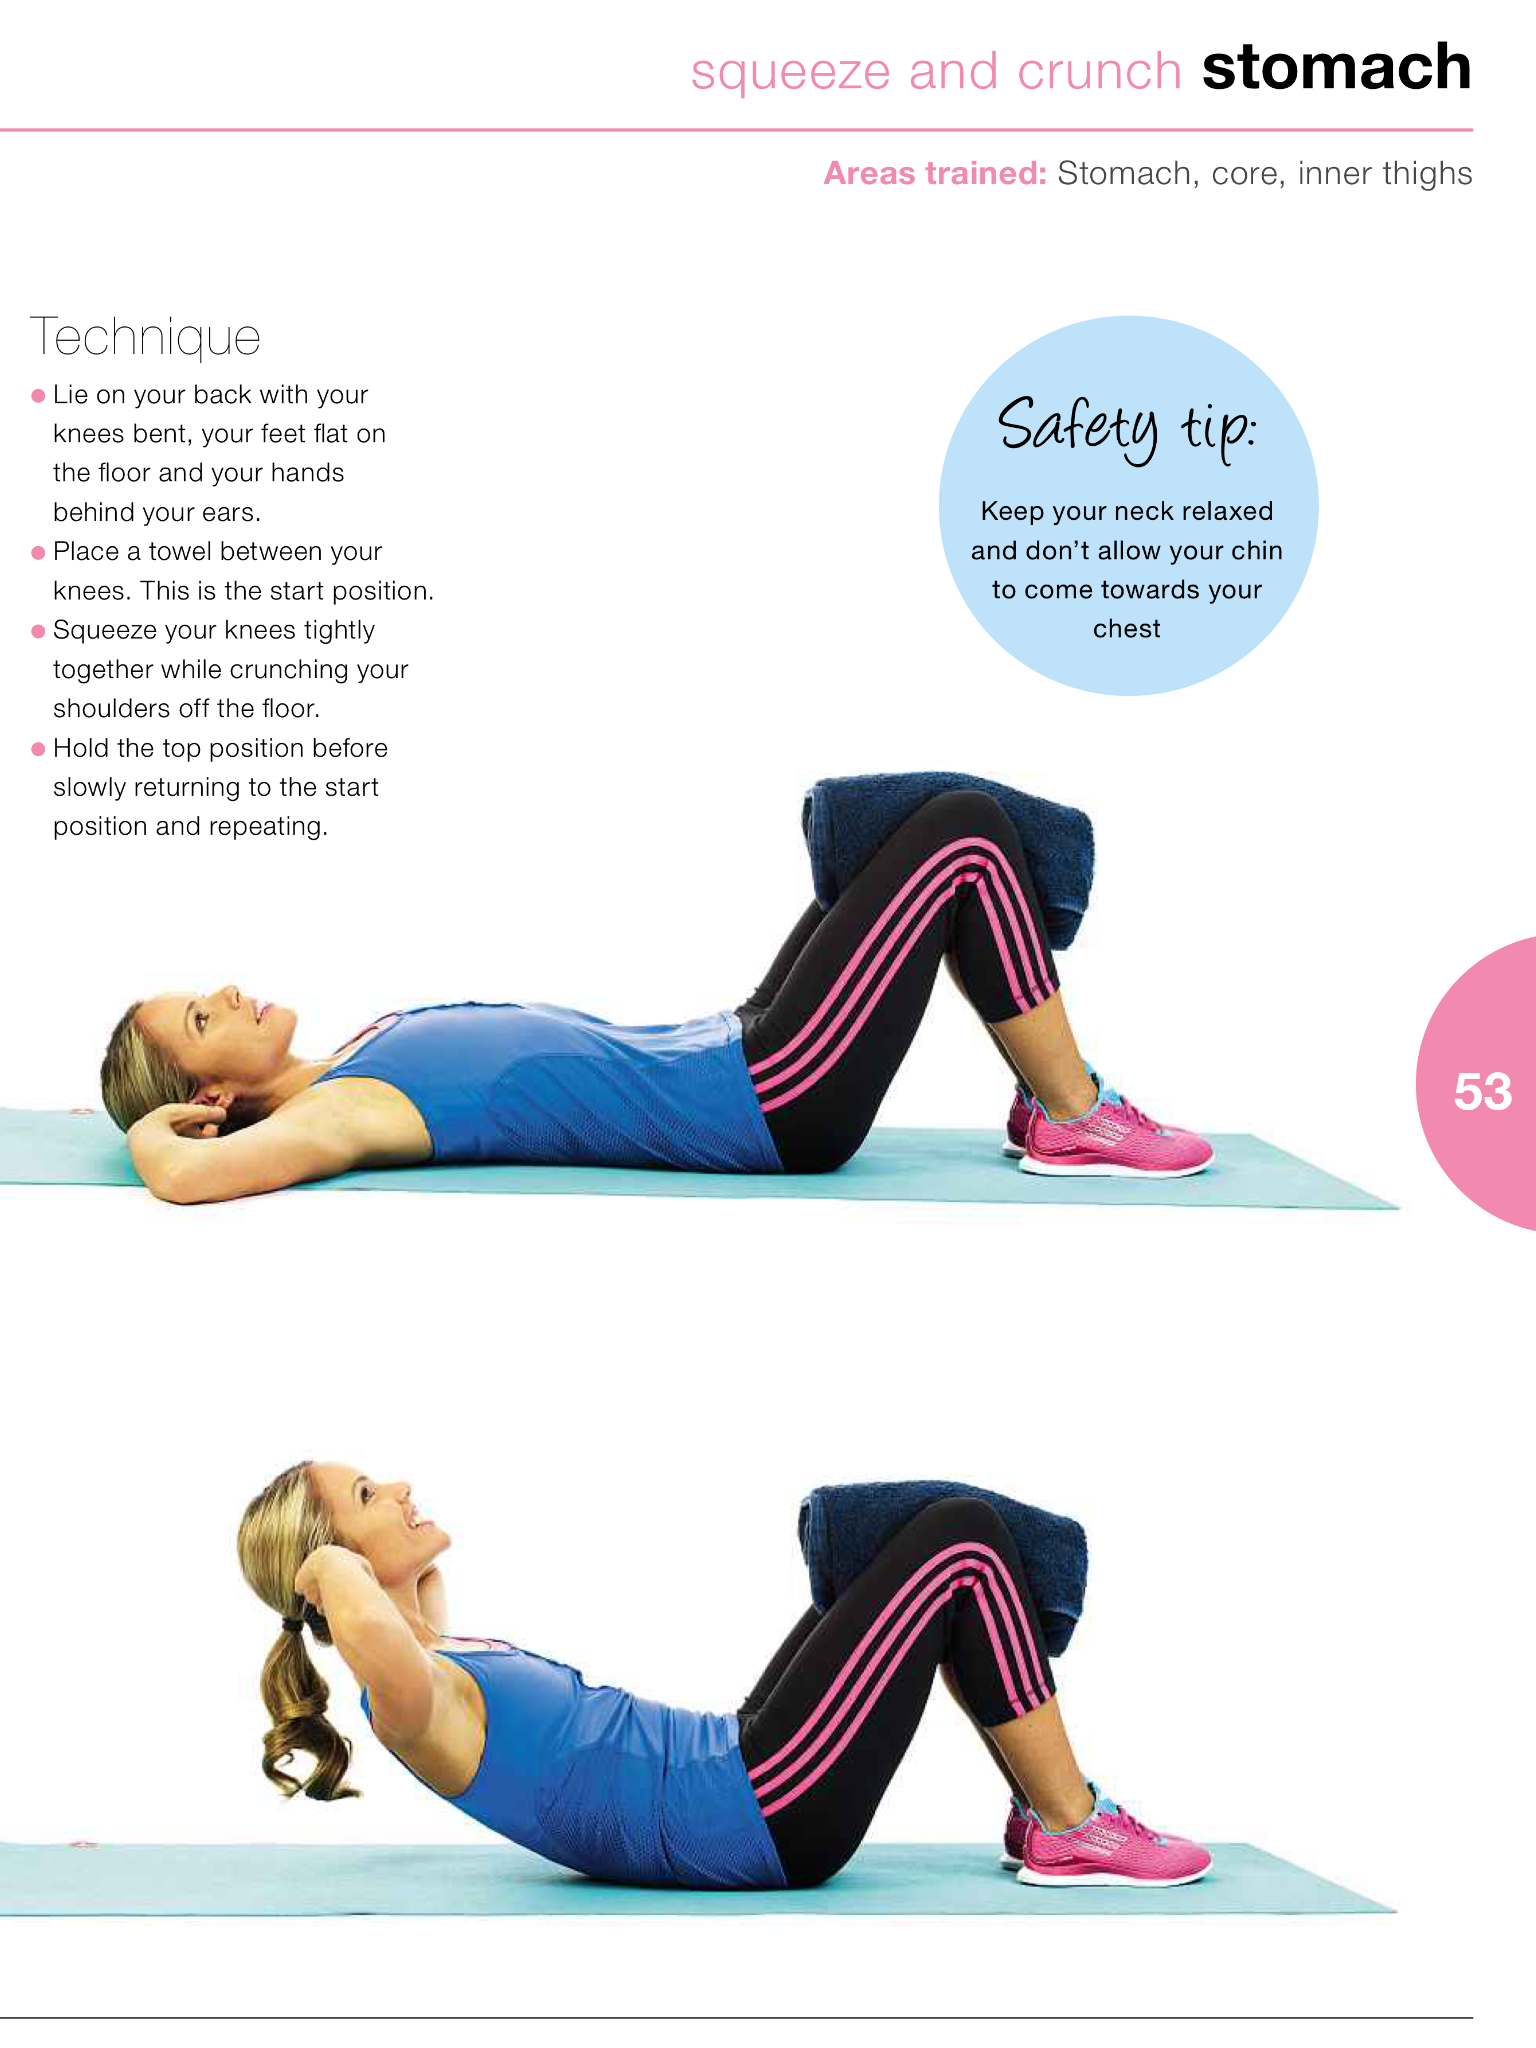 Pin by Jia Jia on Fitness & workouts (With images